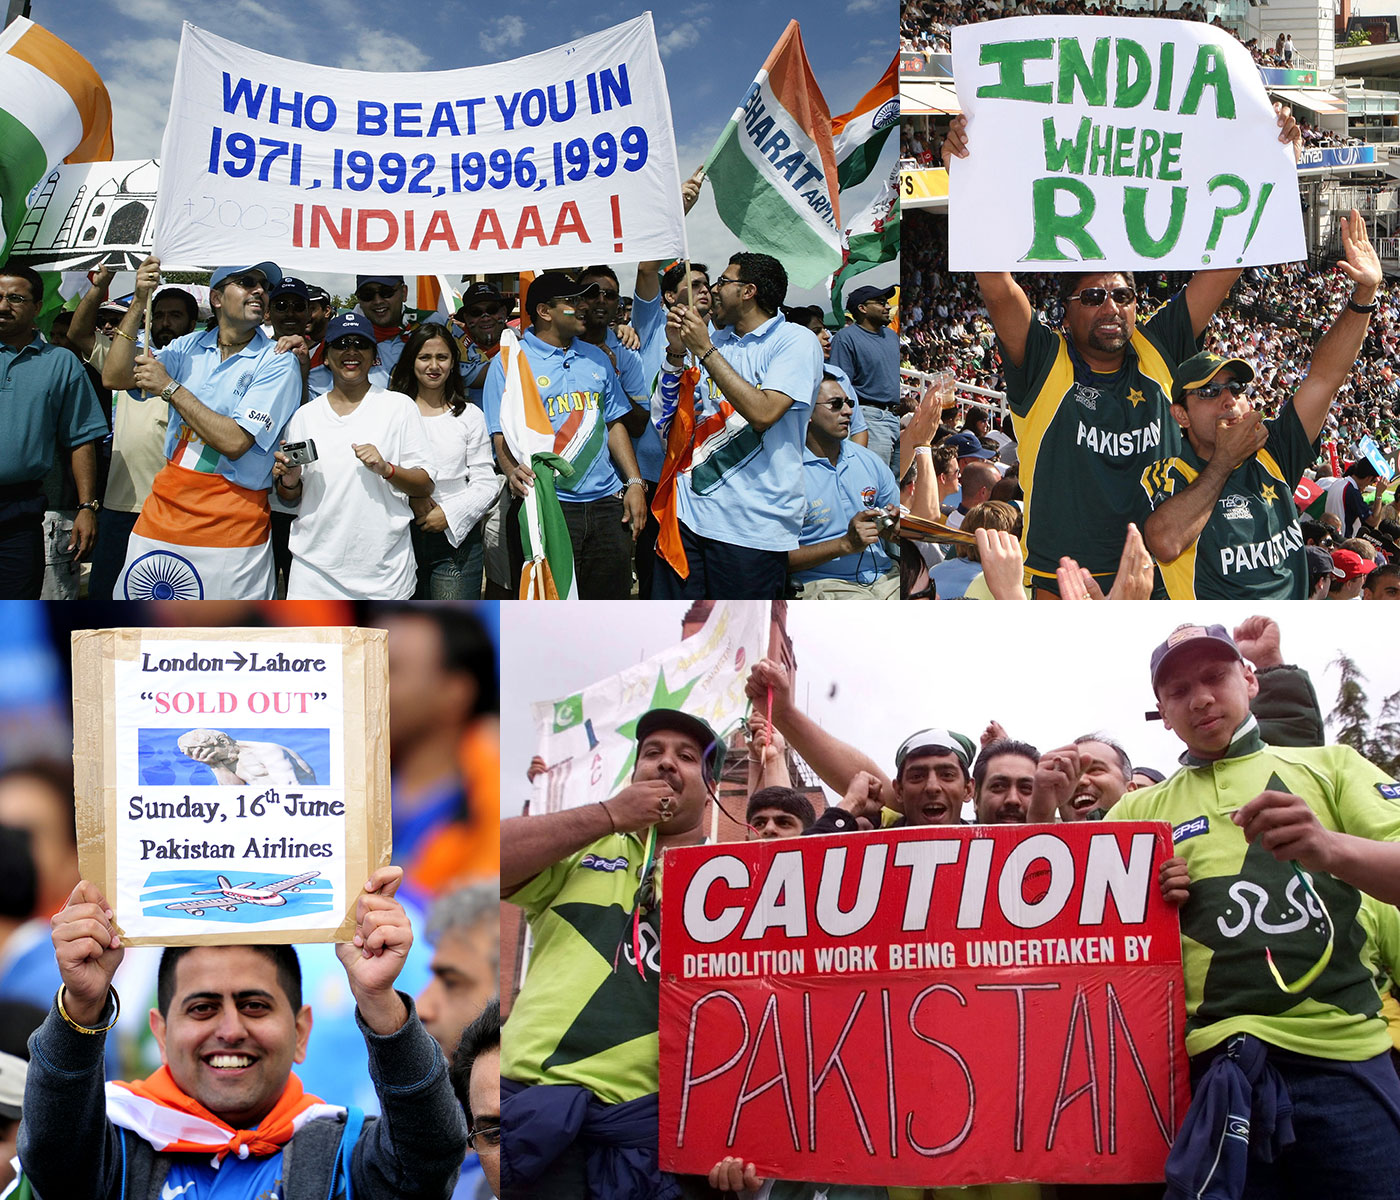 You can never have enough taunts, brags and war references at an India-Pakistan game